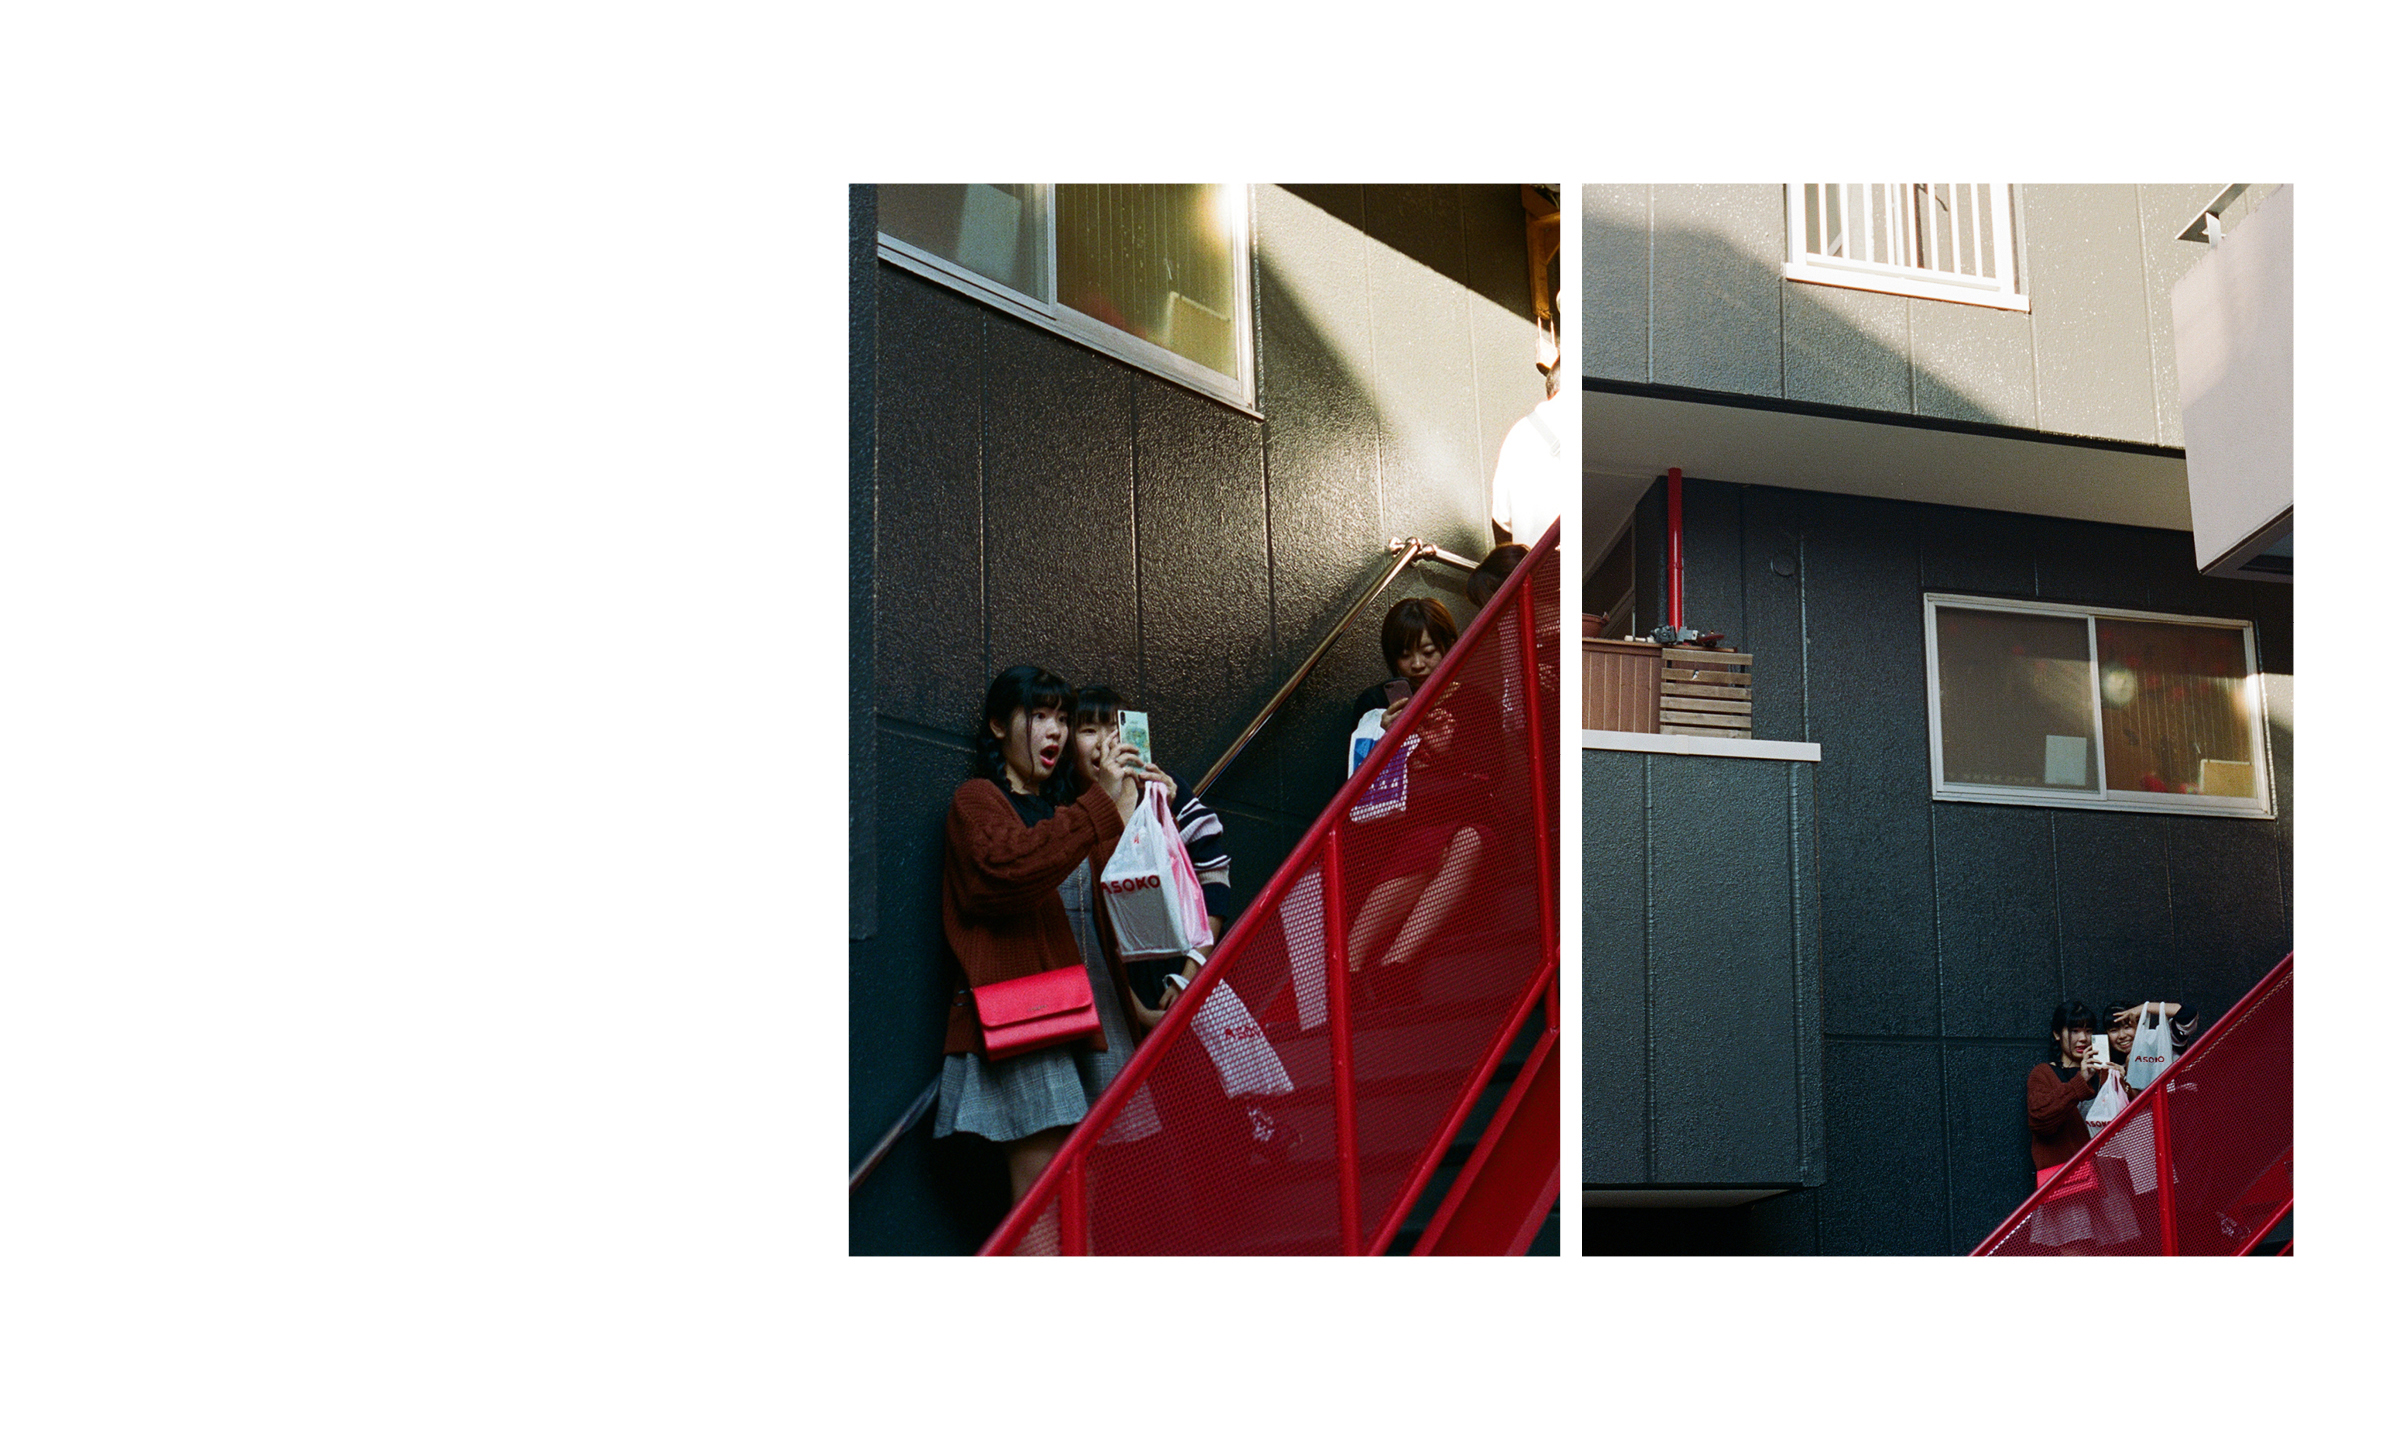 Tokyo_Photography_Case_Study_Layout22.jpg